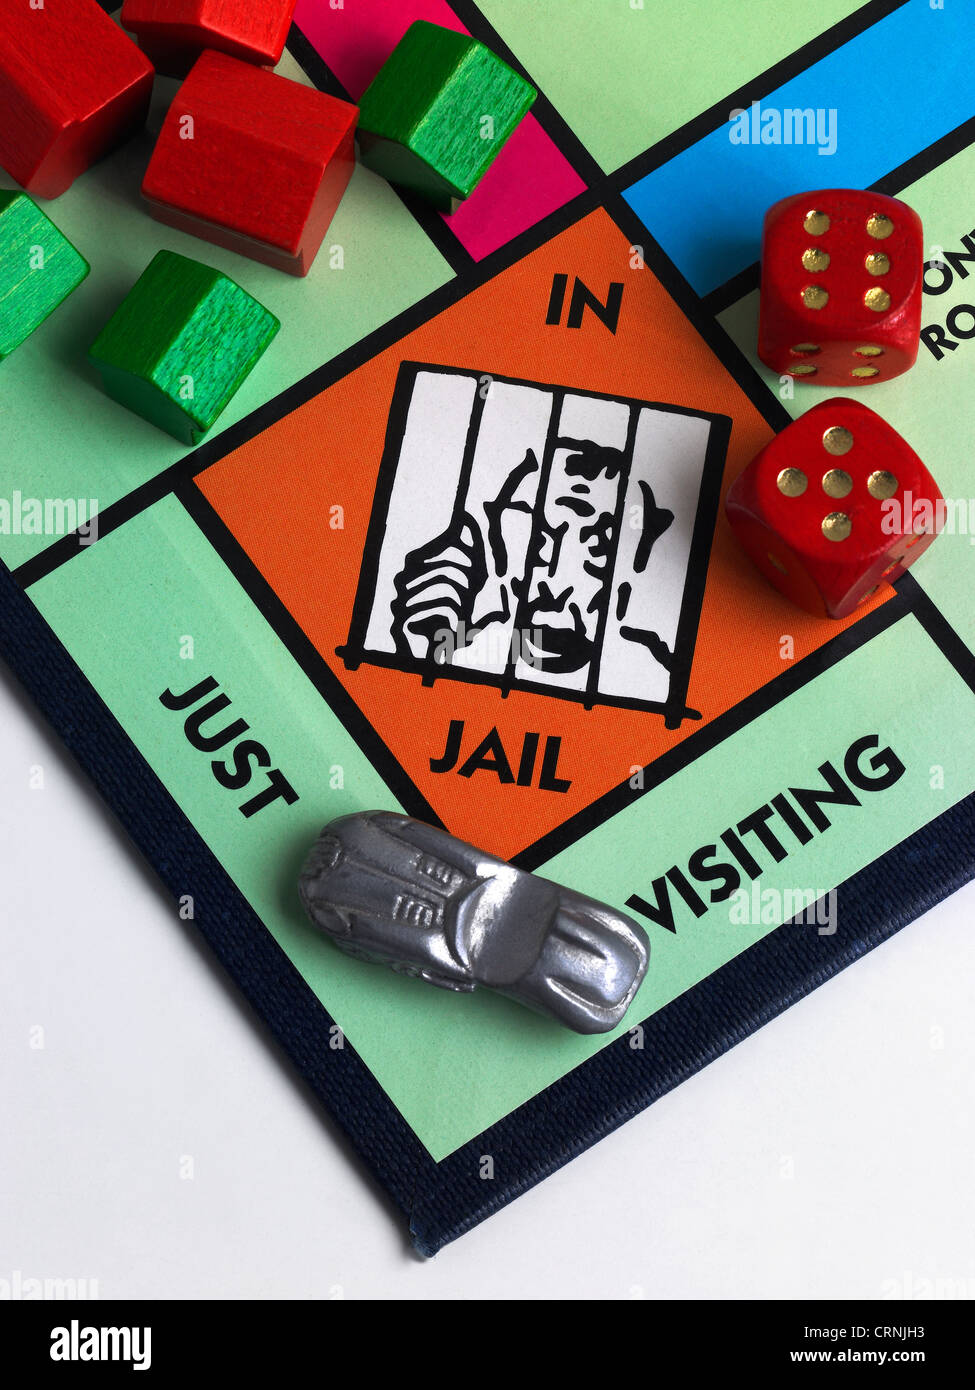 A Monopoly game board showing Jail - Stock Image